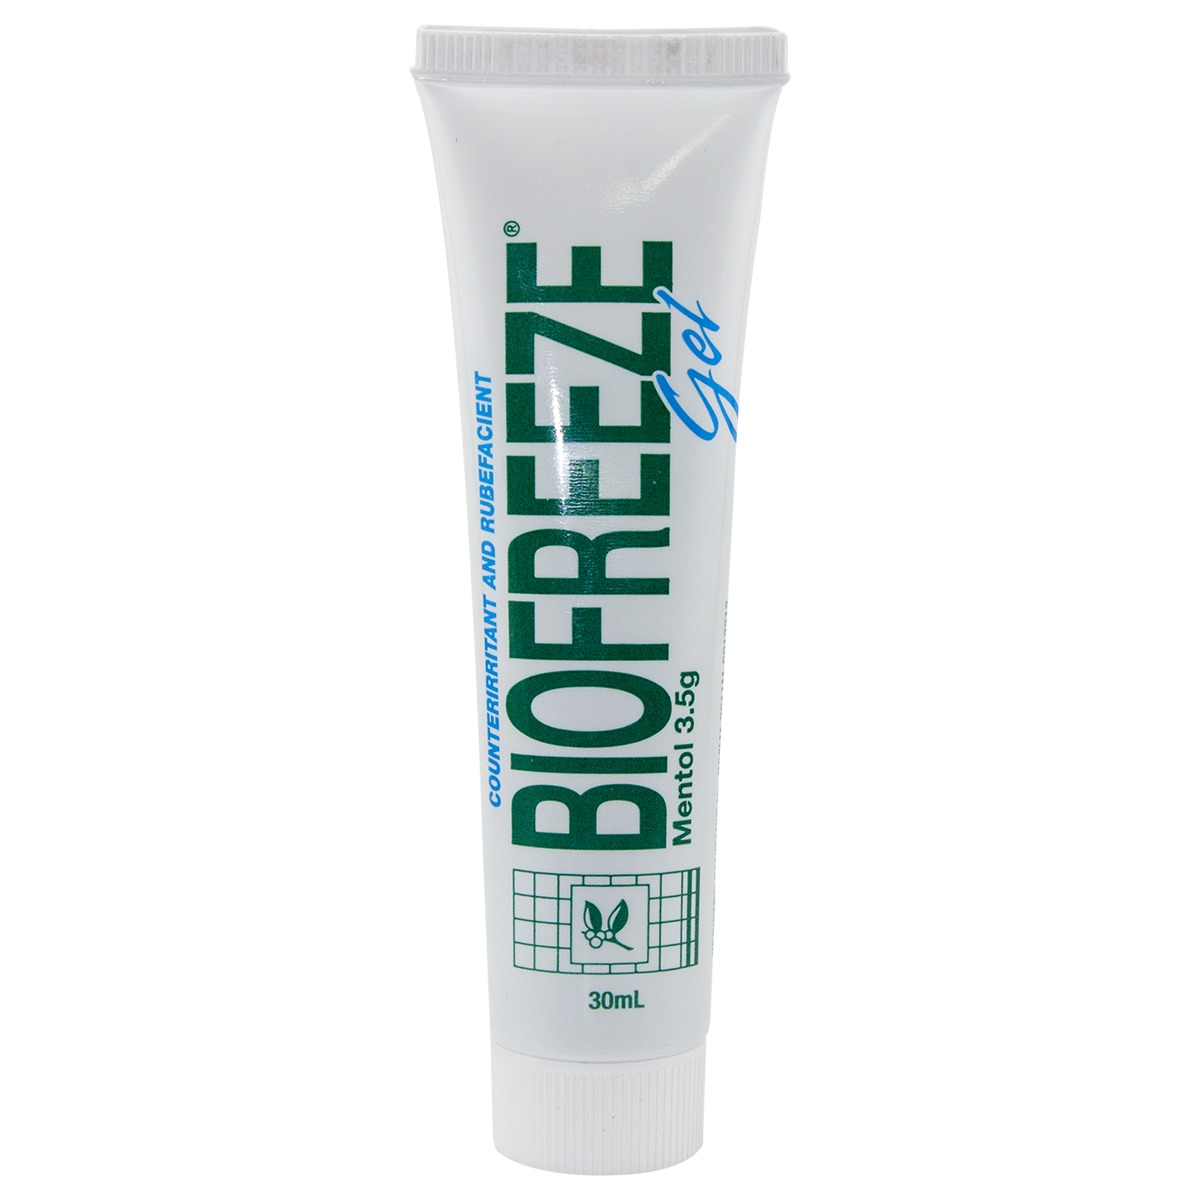 BIOFREEZE GEL 30ml